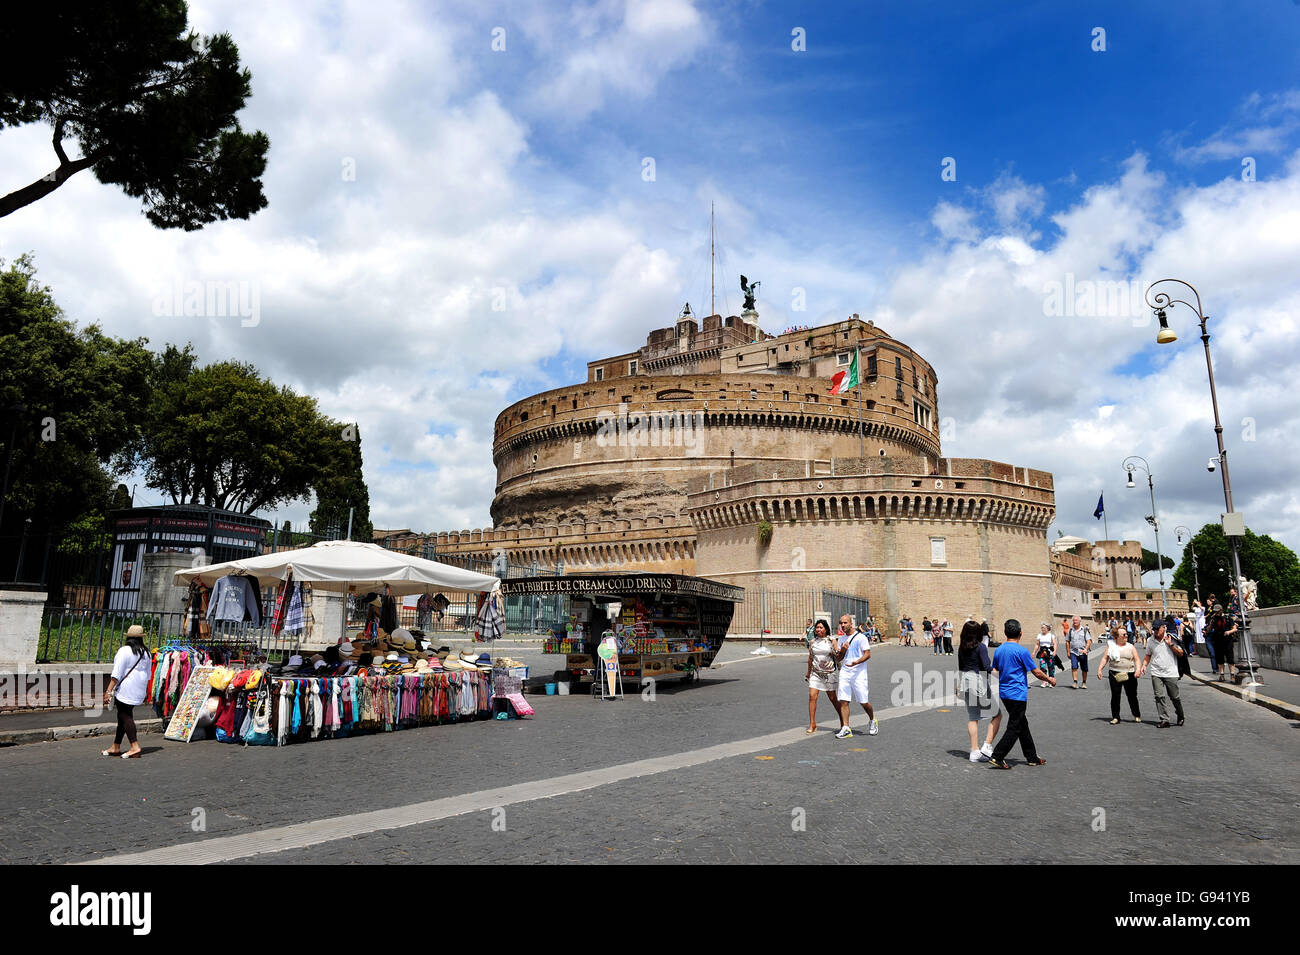 Rome, Italy. Castle Sant Angelo. Picture by Paul Heyes, Wednesday June 01, 2016. - Stock Image